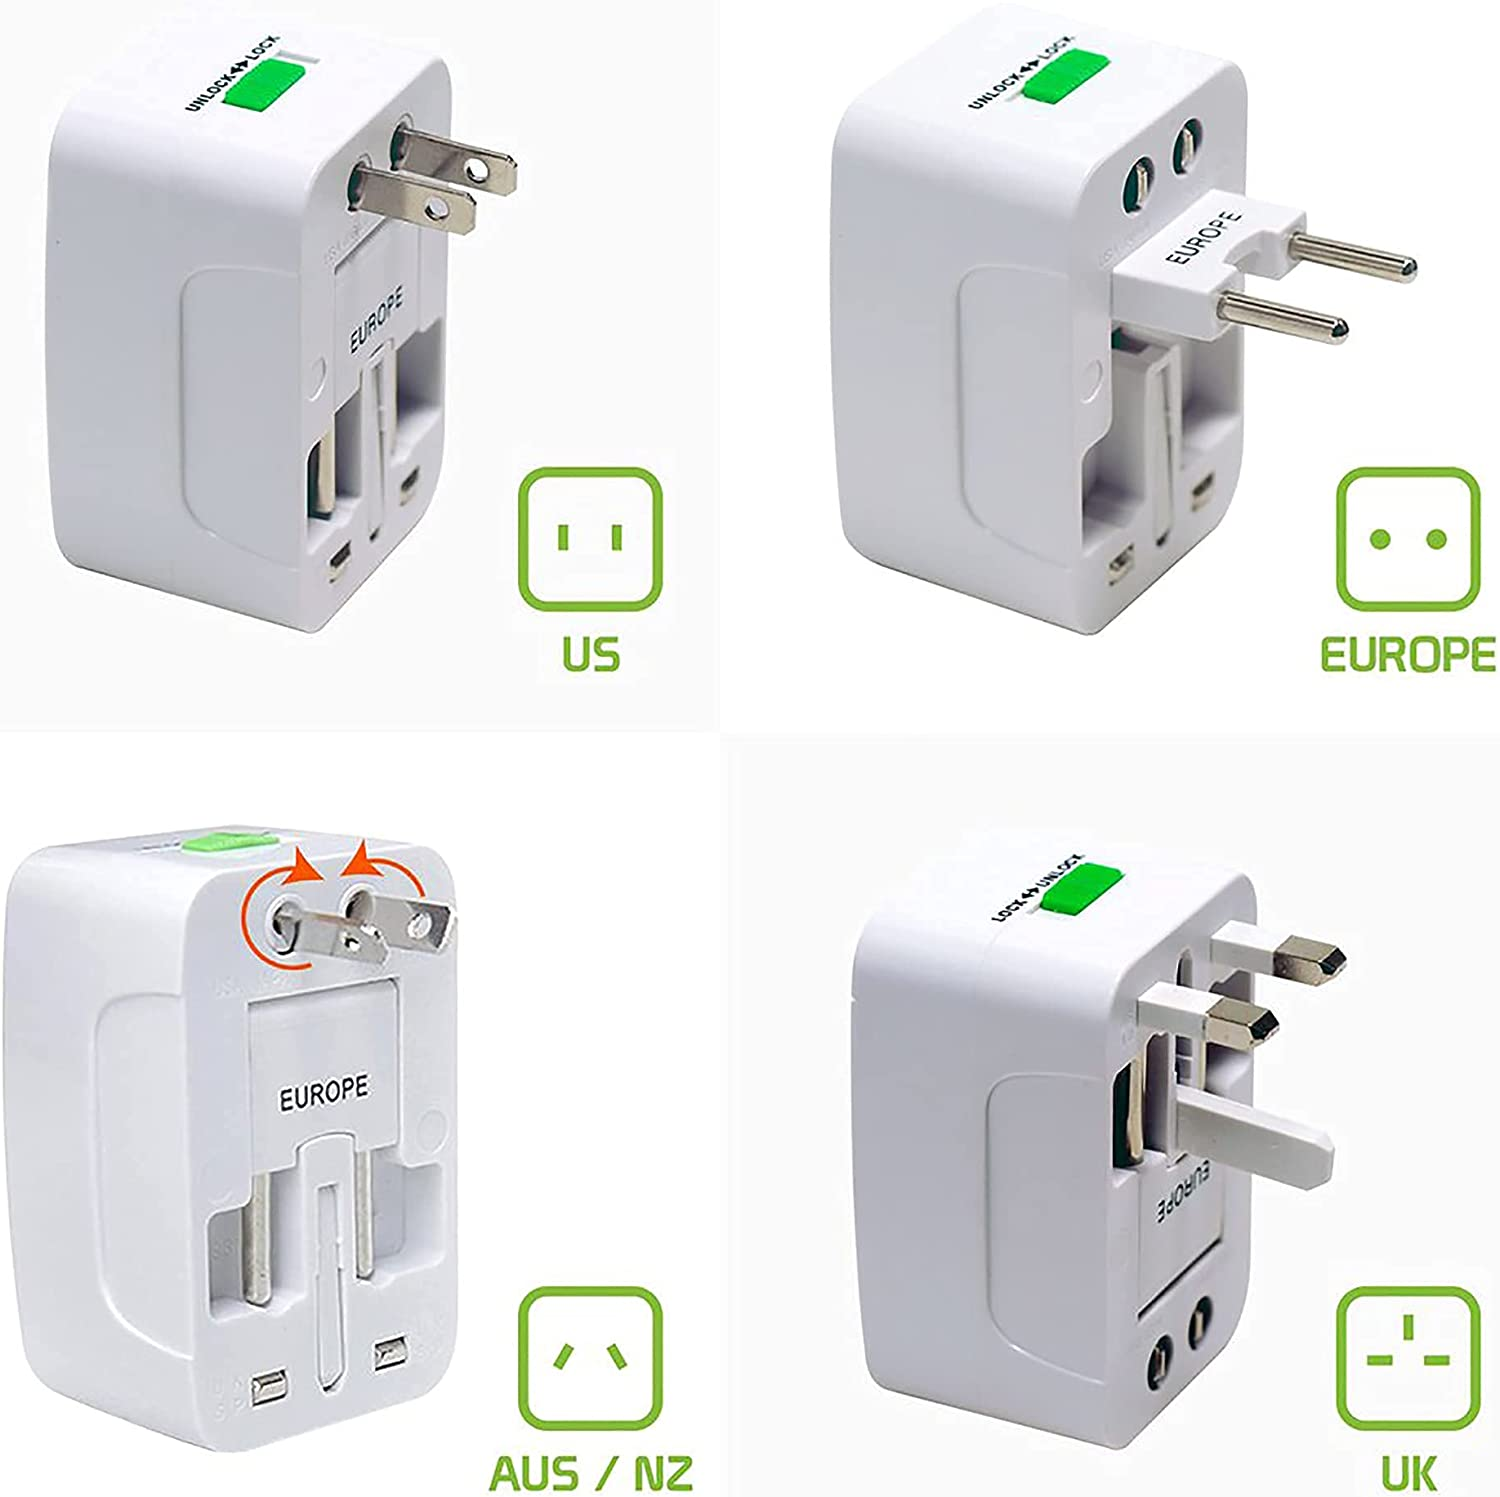 Worldwide Power Adapter Works for Micromax Canvas Engage is Universal for 90% of Travel Between US/EU/CN/AUS/NZ/UK Type